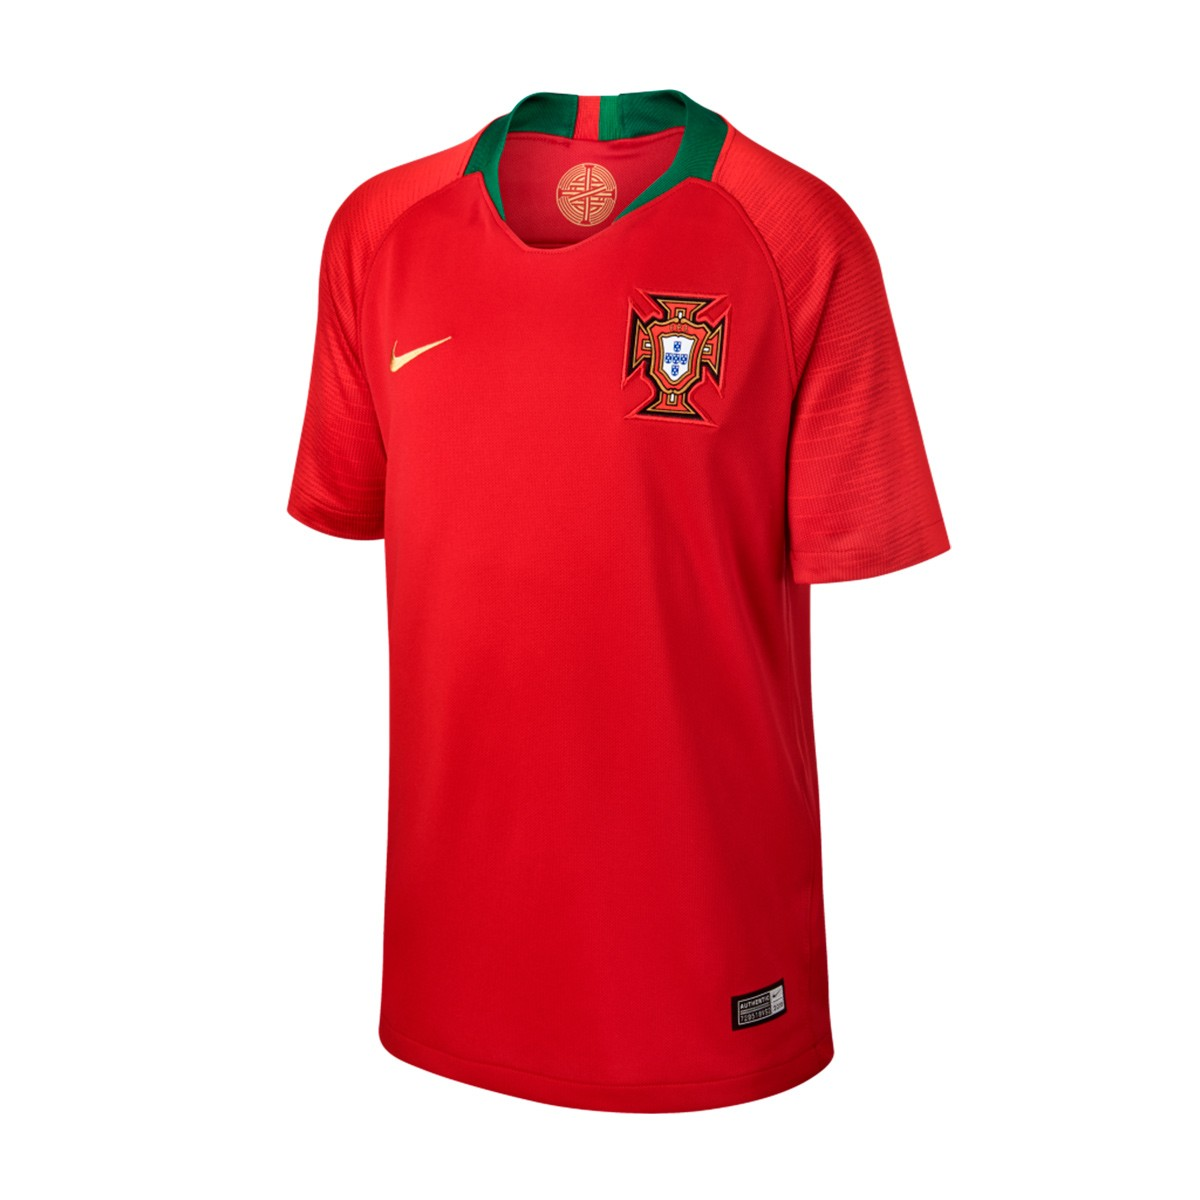 203a52d2c3f Nike Kids Portugal Breathe Stadium 2018-2019 Home Jersey. Gym red ...